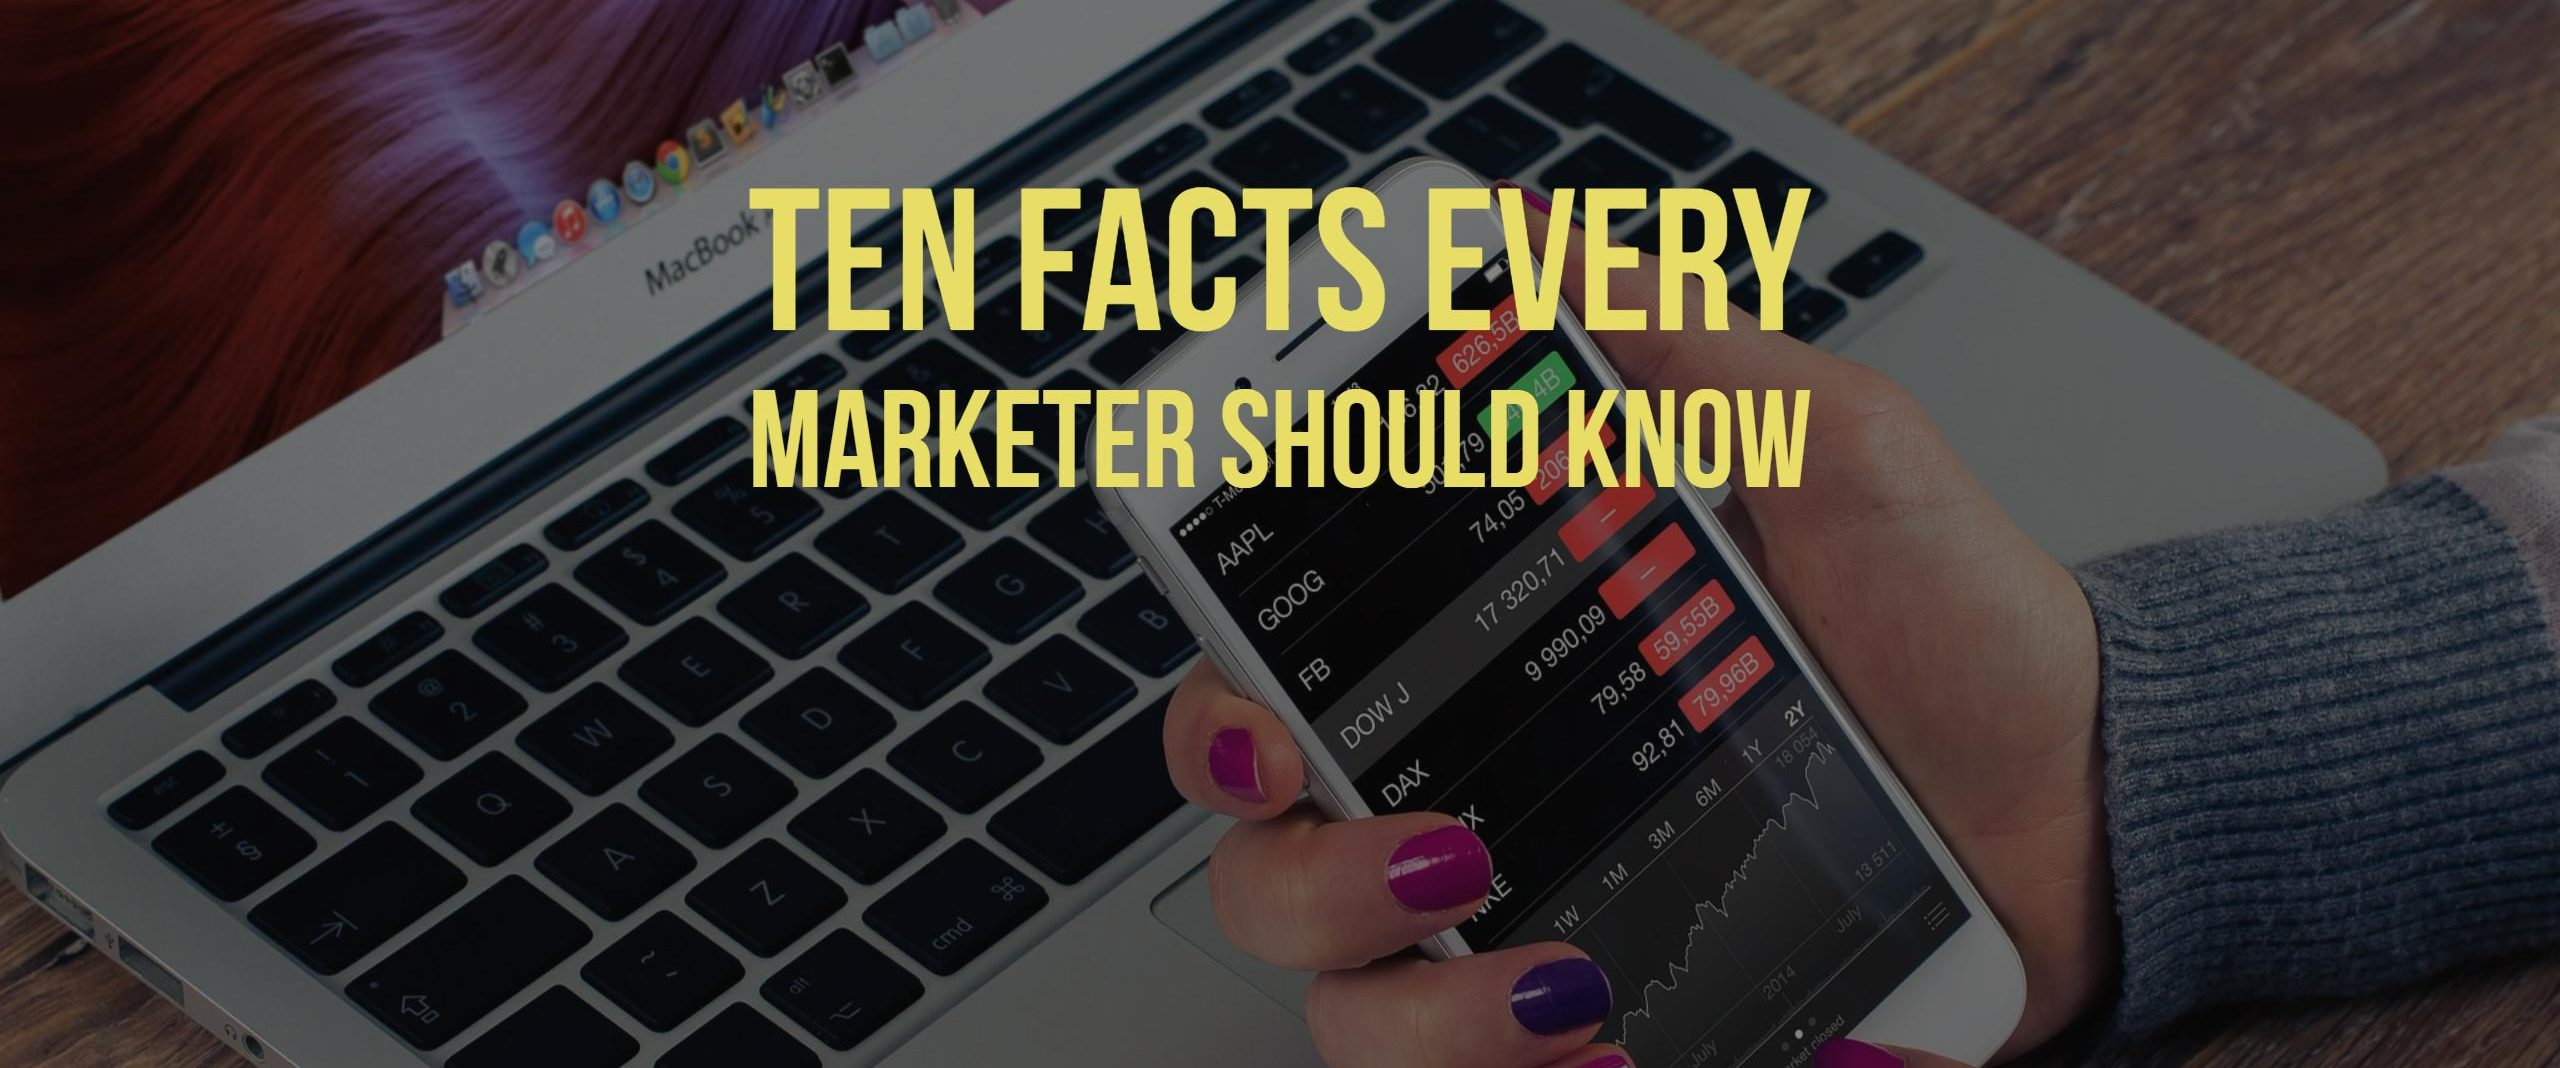 Ten Facts Every Marketer Should Know